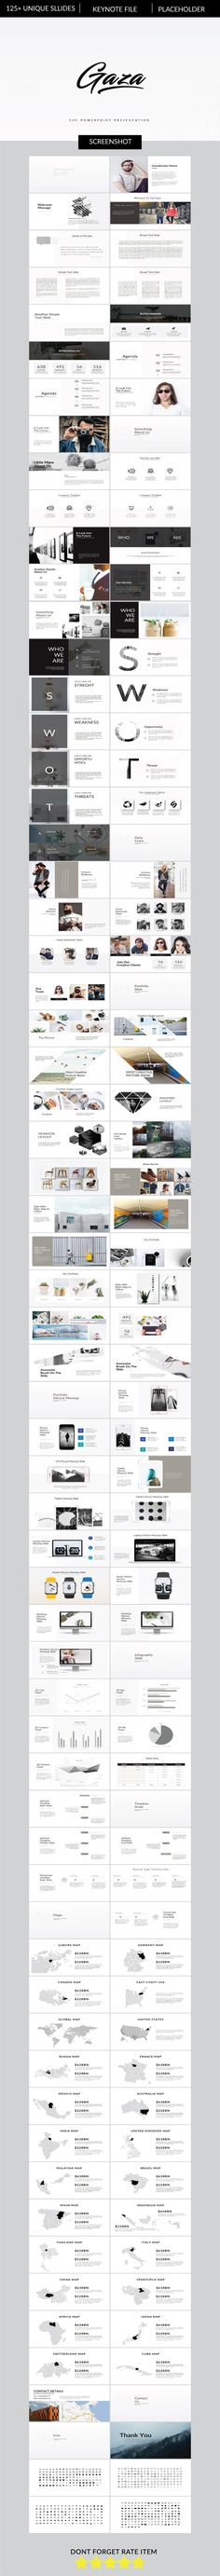 Spectrum is a clean, simple and impressive business presentation - business presentation template